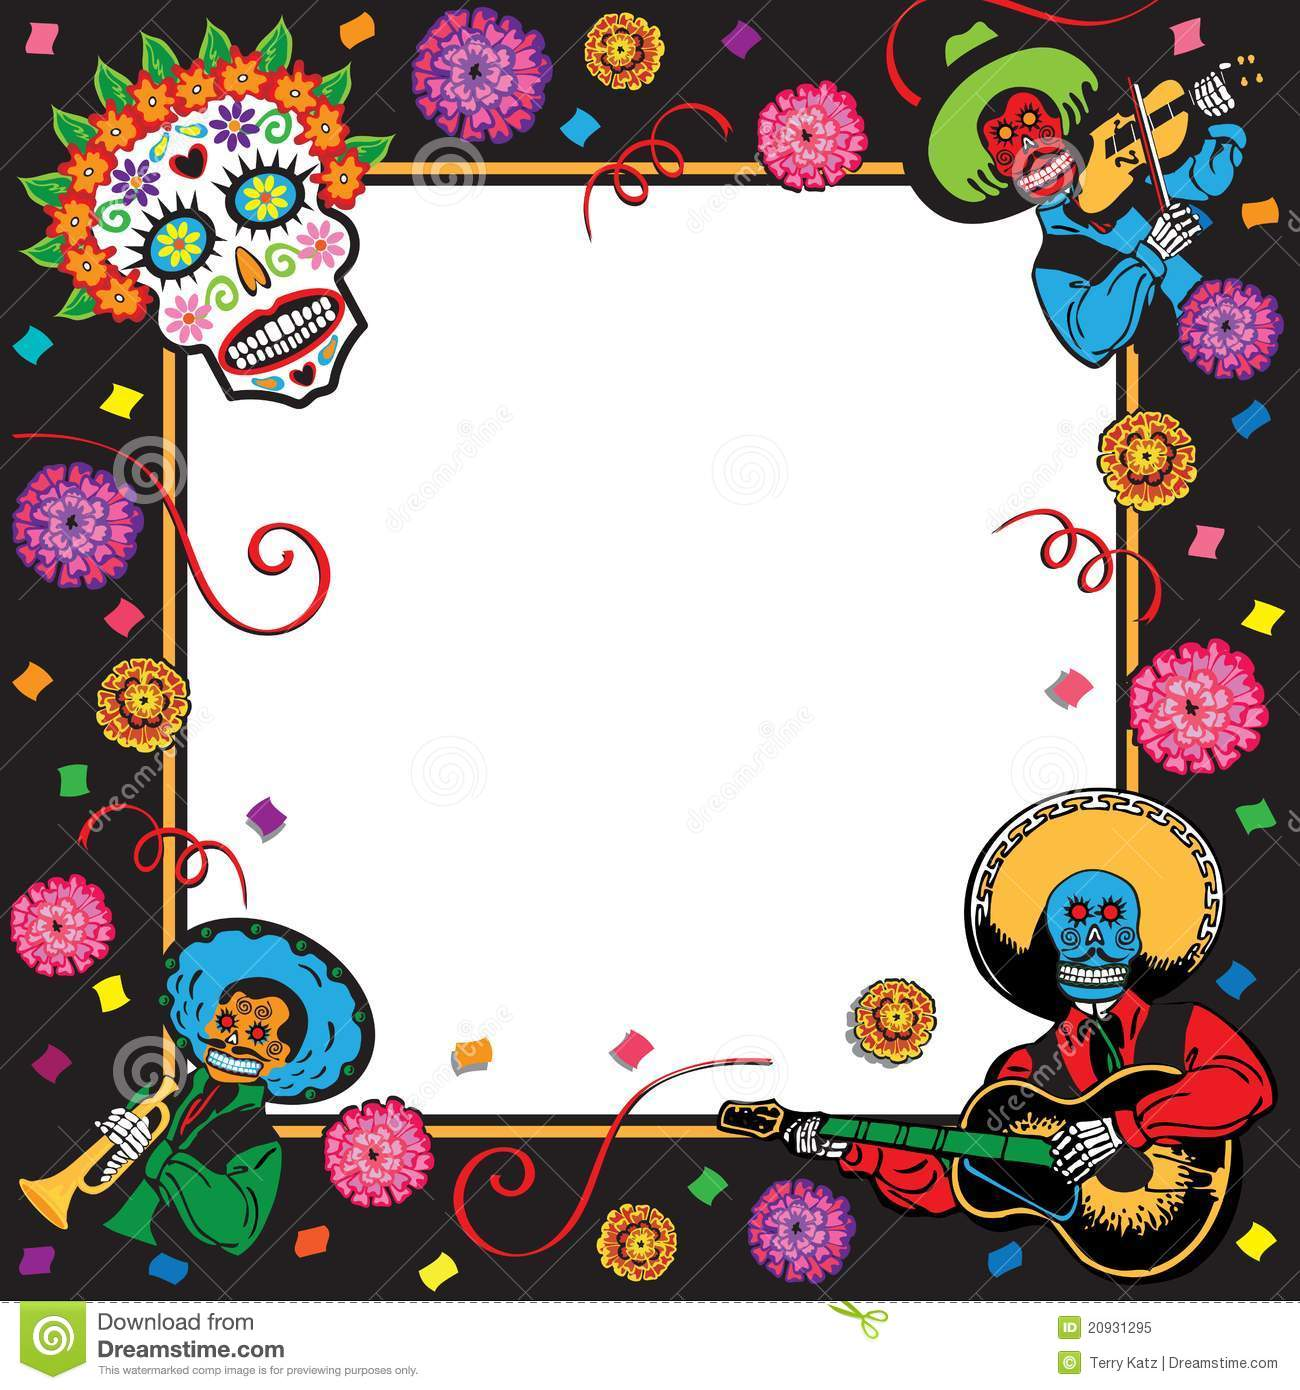 Day Of The Dead Party Invitation Royalty Free Stock Photo - Image ...